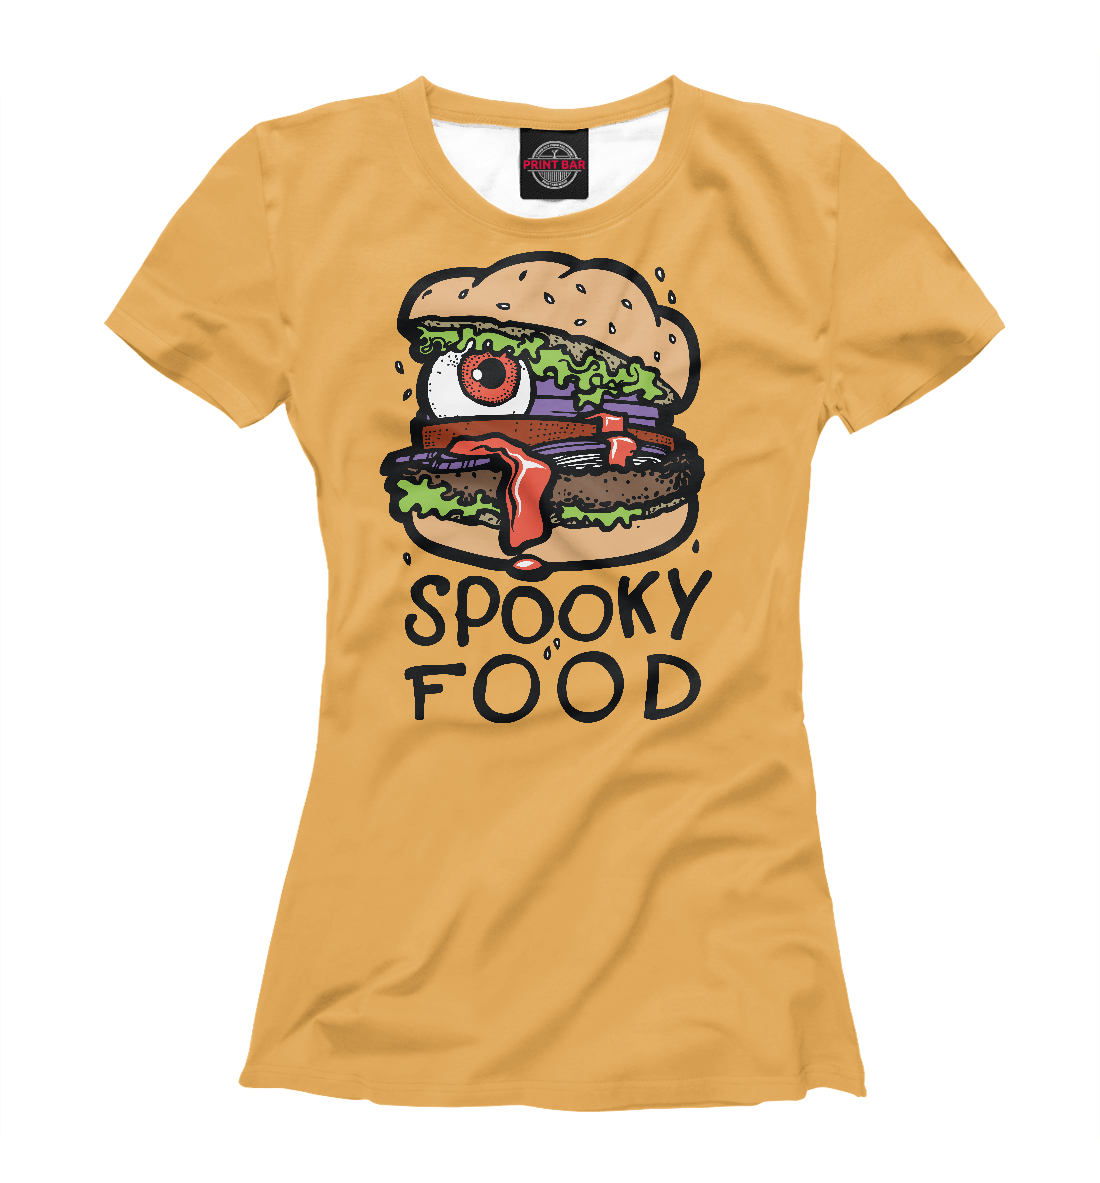 Купить Spooky food, Printbar, Футболки, APD-721925-fut-1